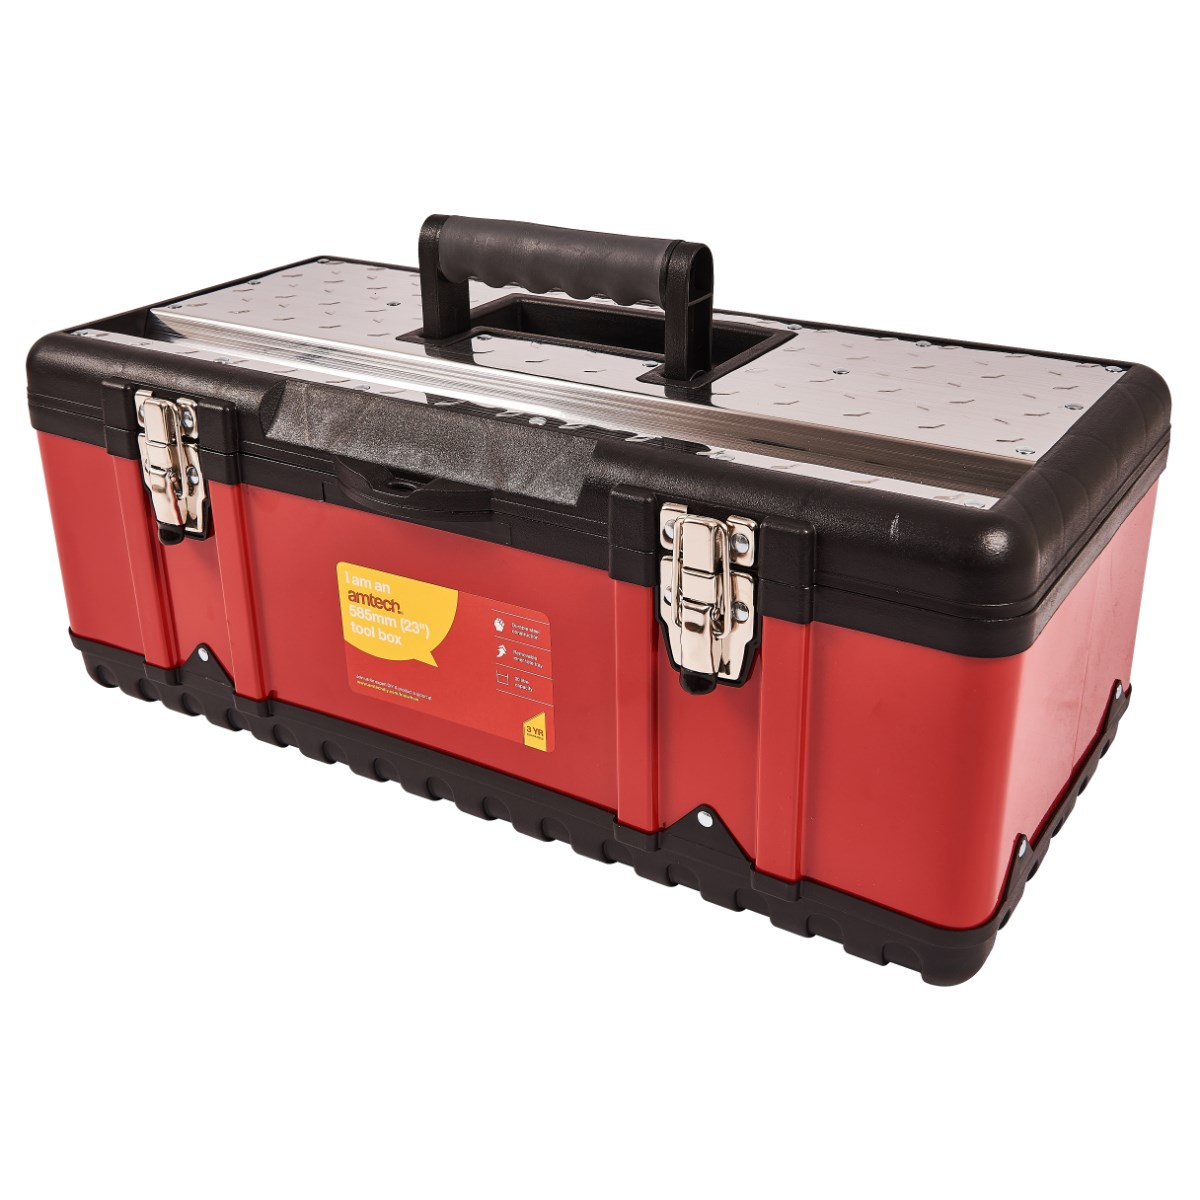 Image of 23″ metal tool box